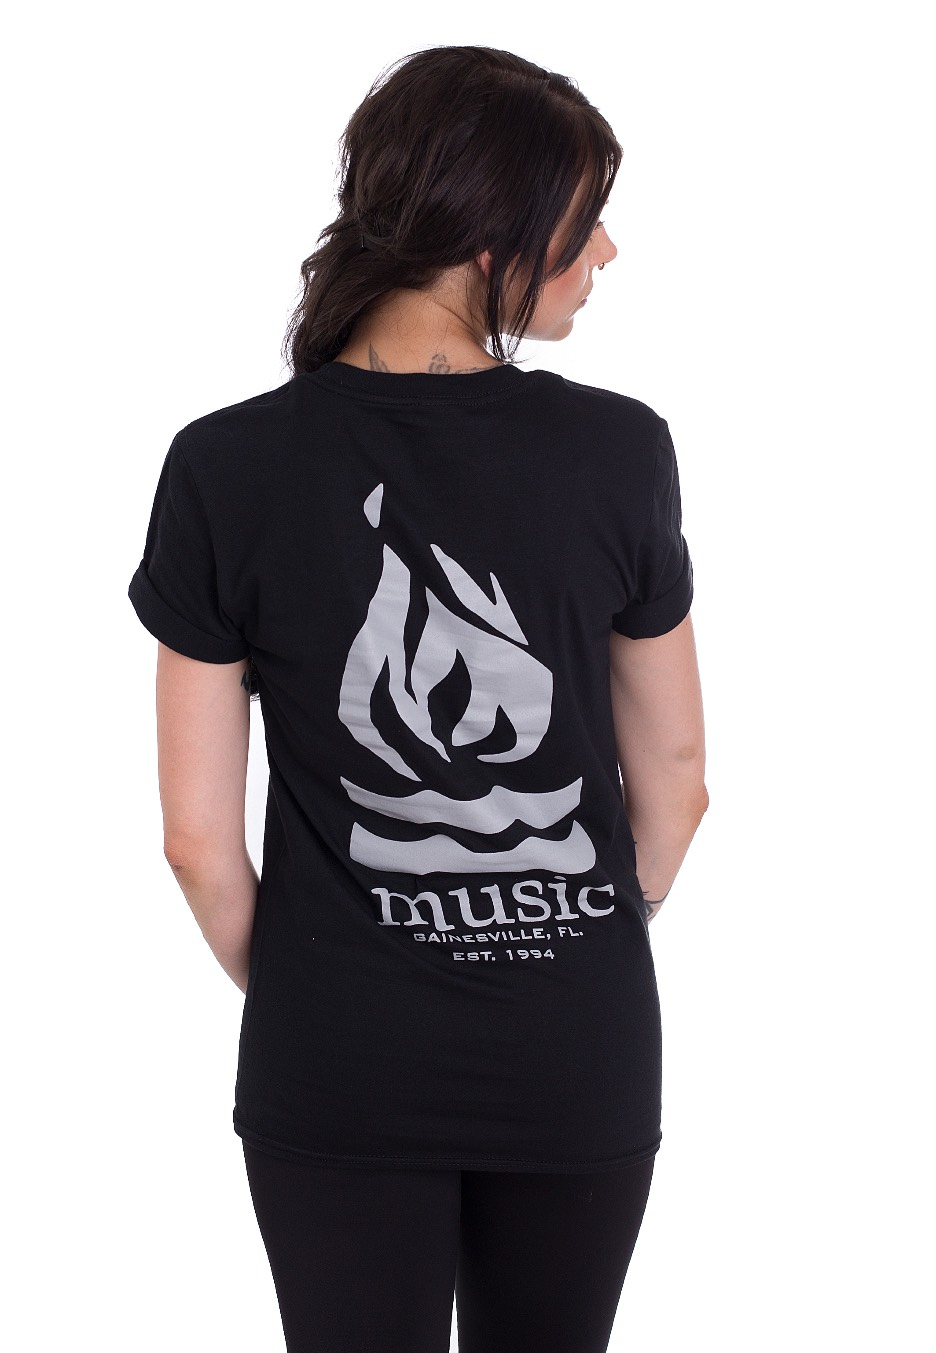 hot water music shirt 06 ford taurus fuse diagram traditional t impericon com us